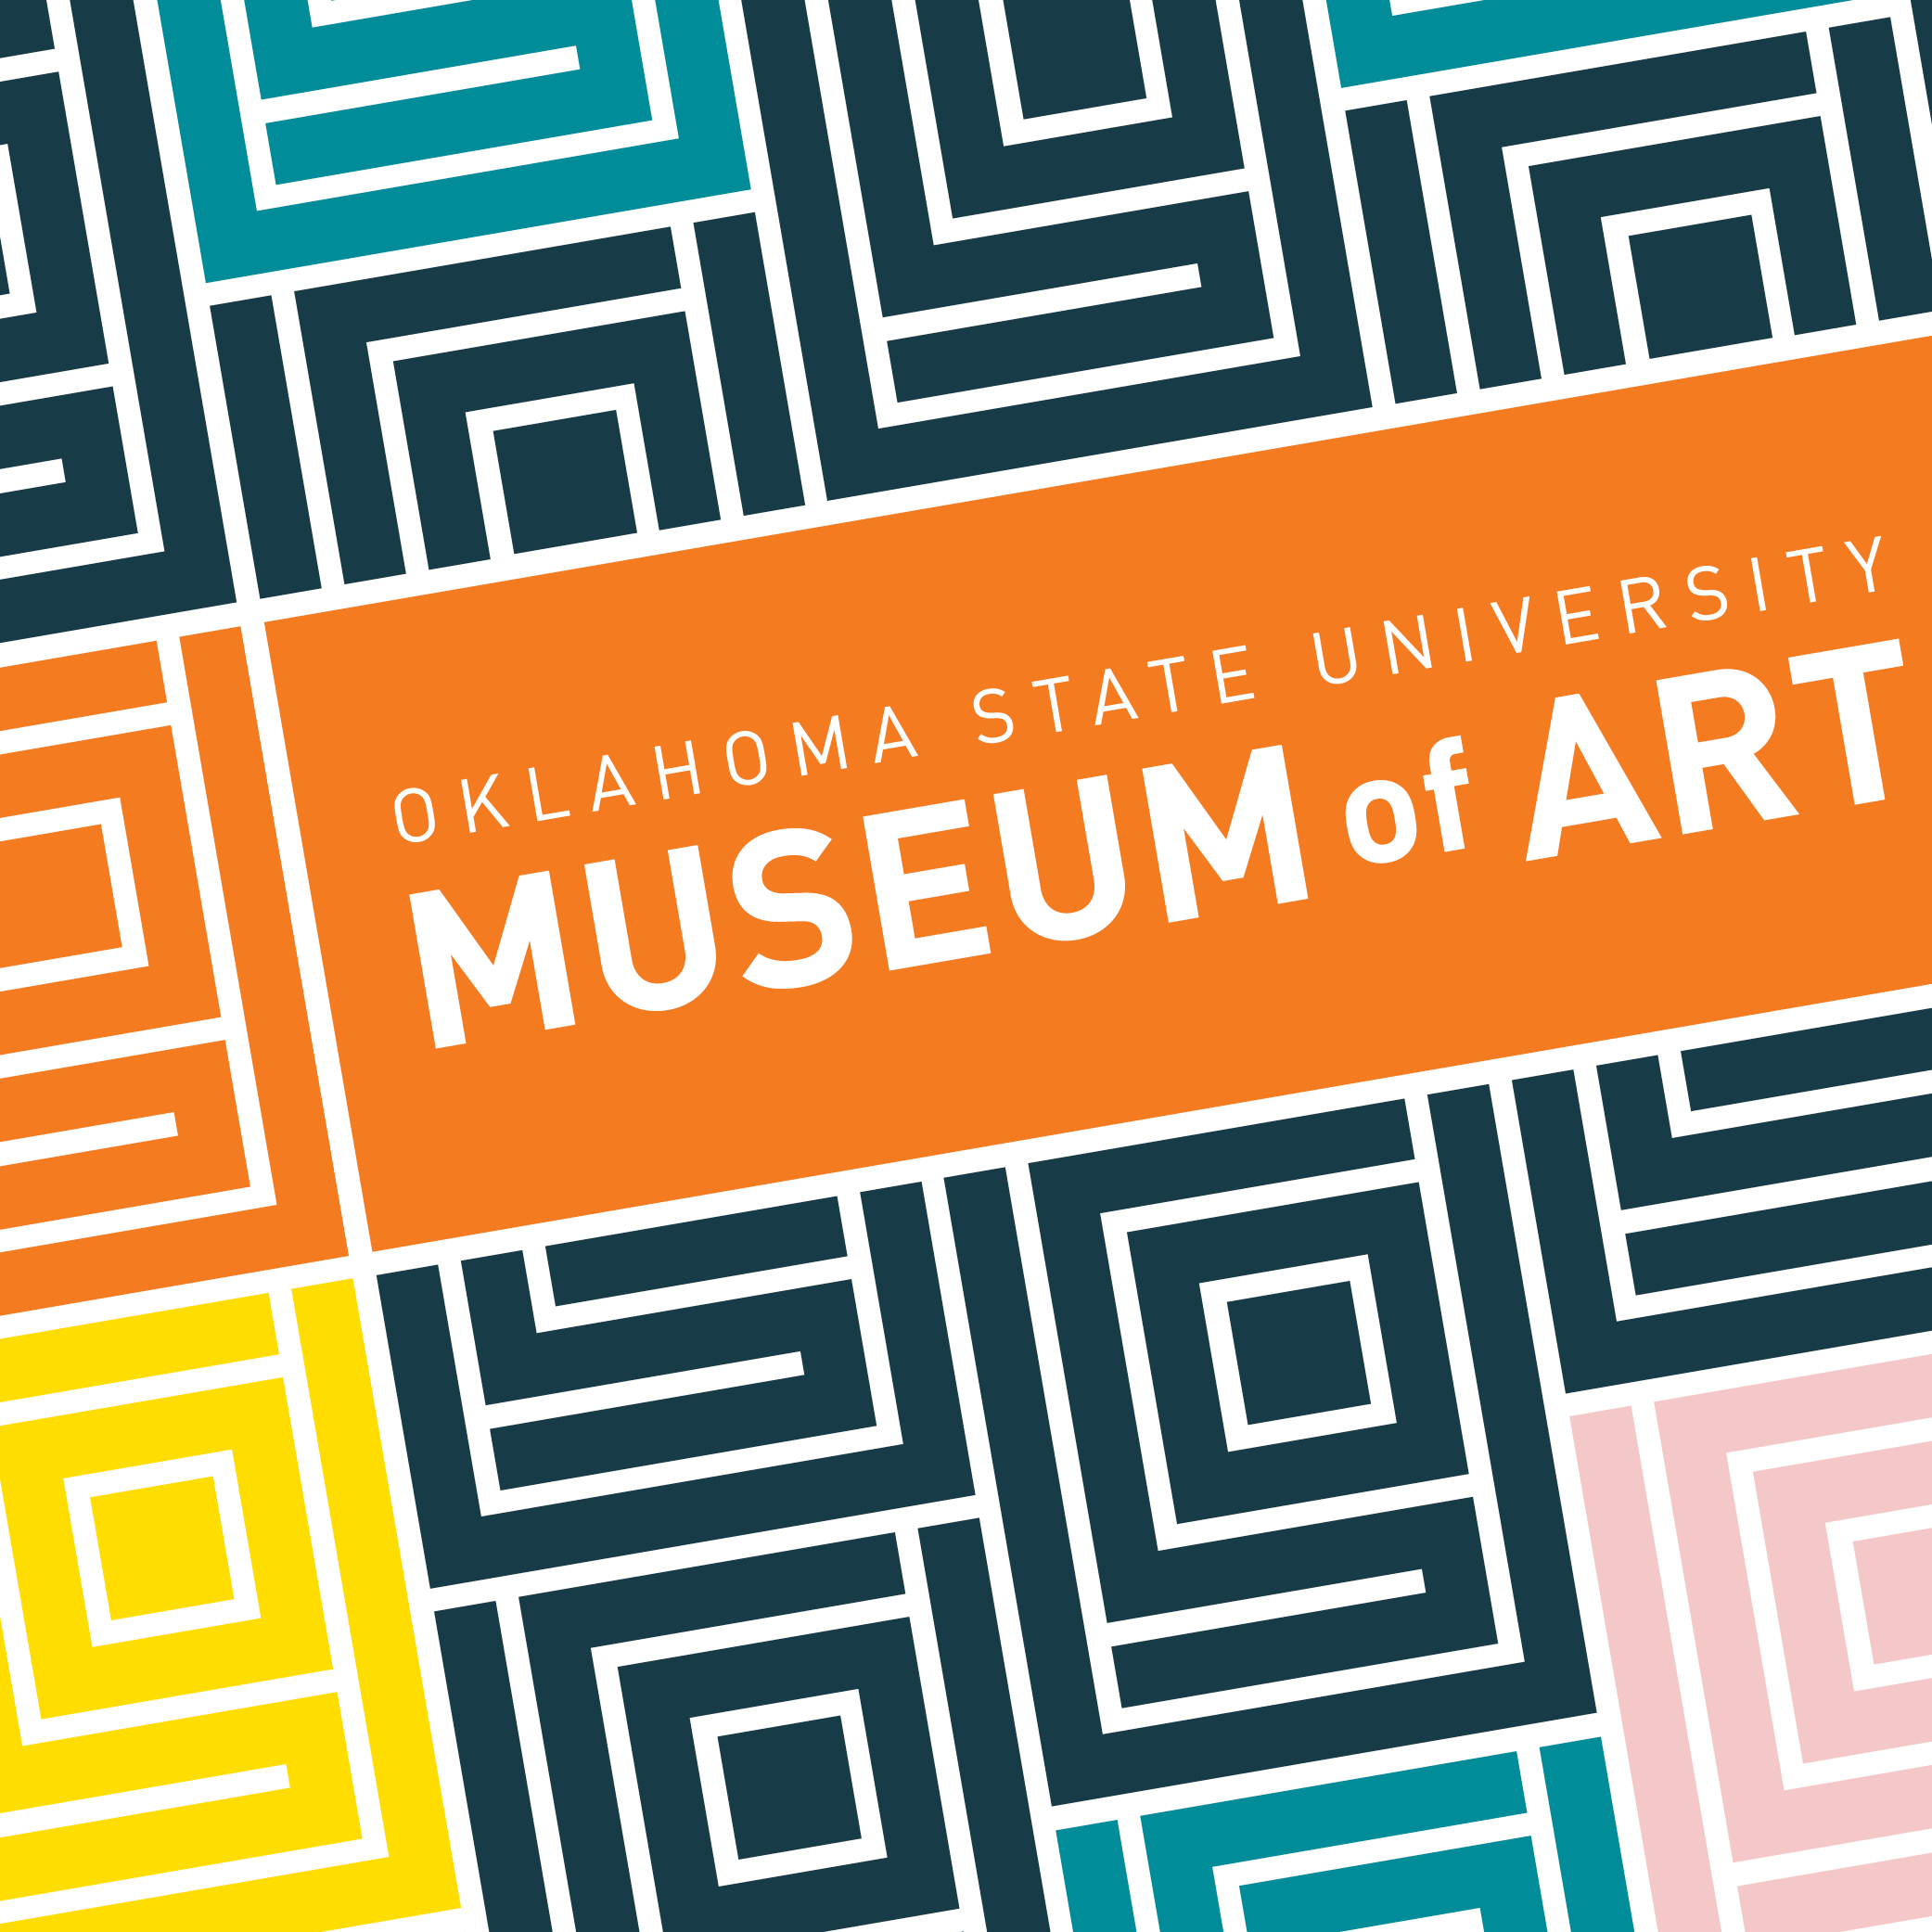 Oklahoma State University Museum of Art